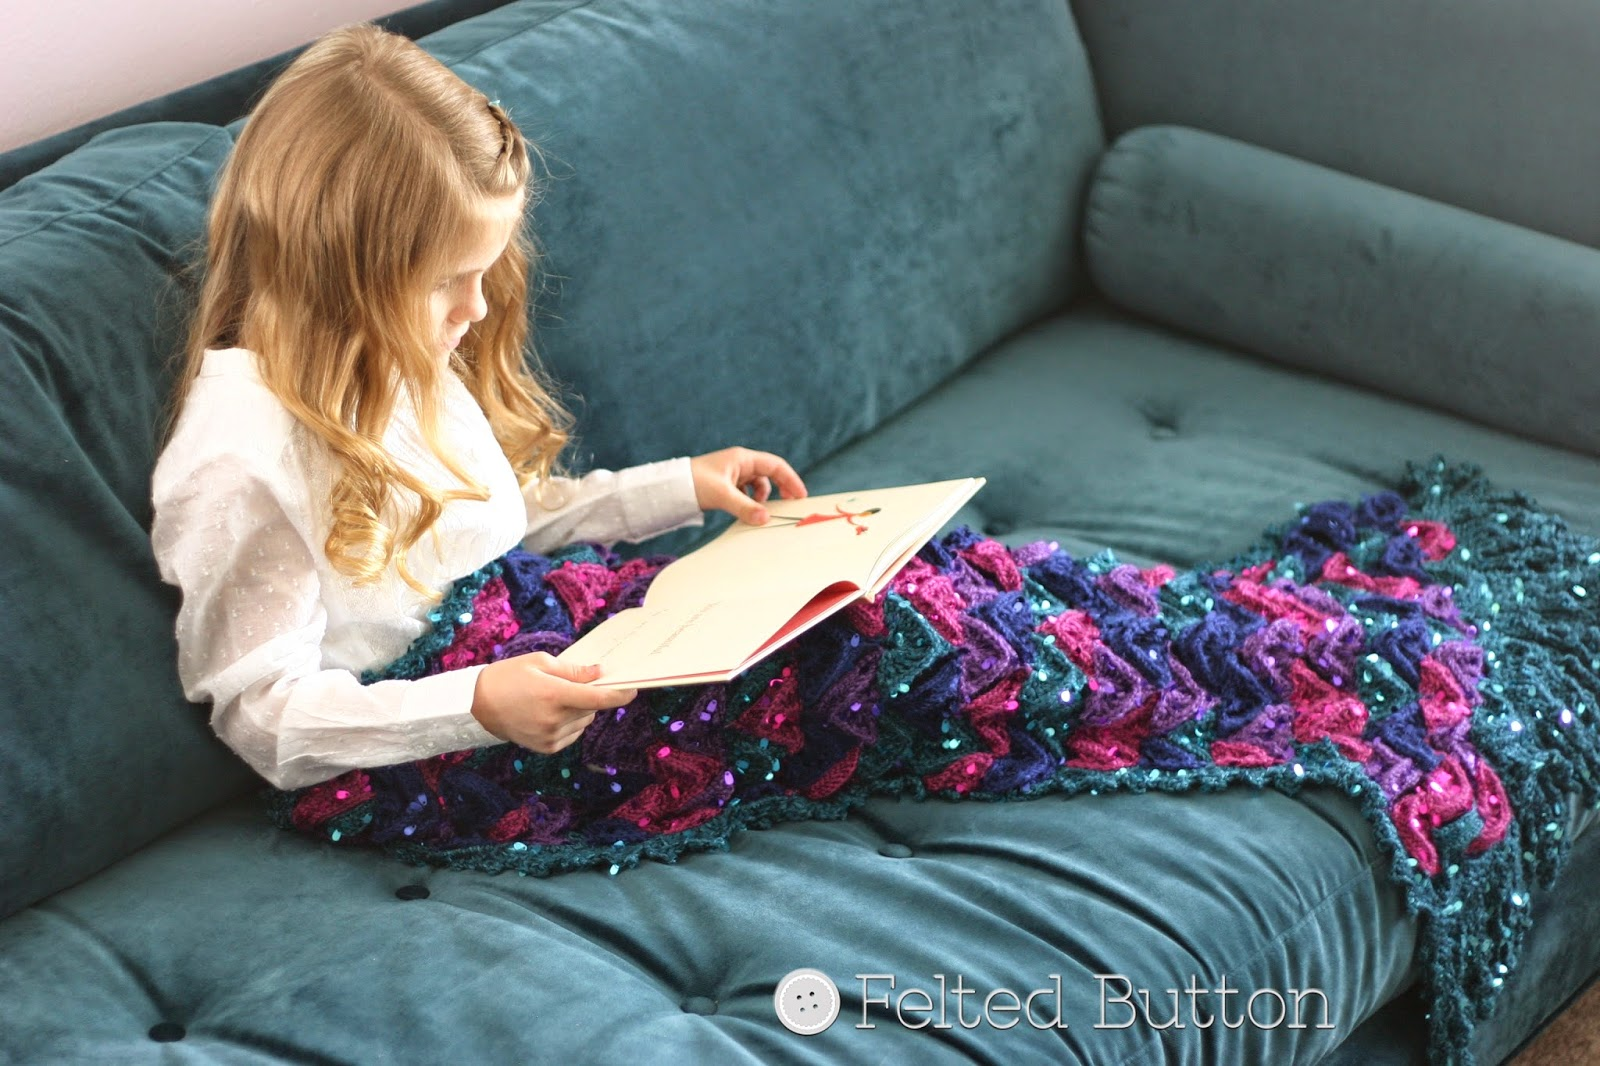 Crochet Patterns Mermaid Blanket : ... Button - Colorful Crochet Patterns: Do You Want to Be a Mermaid